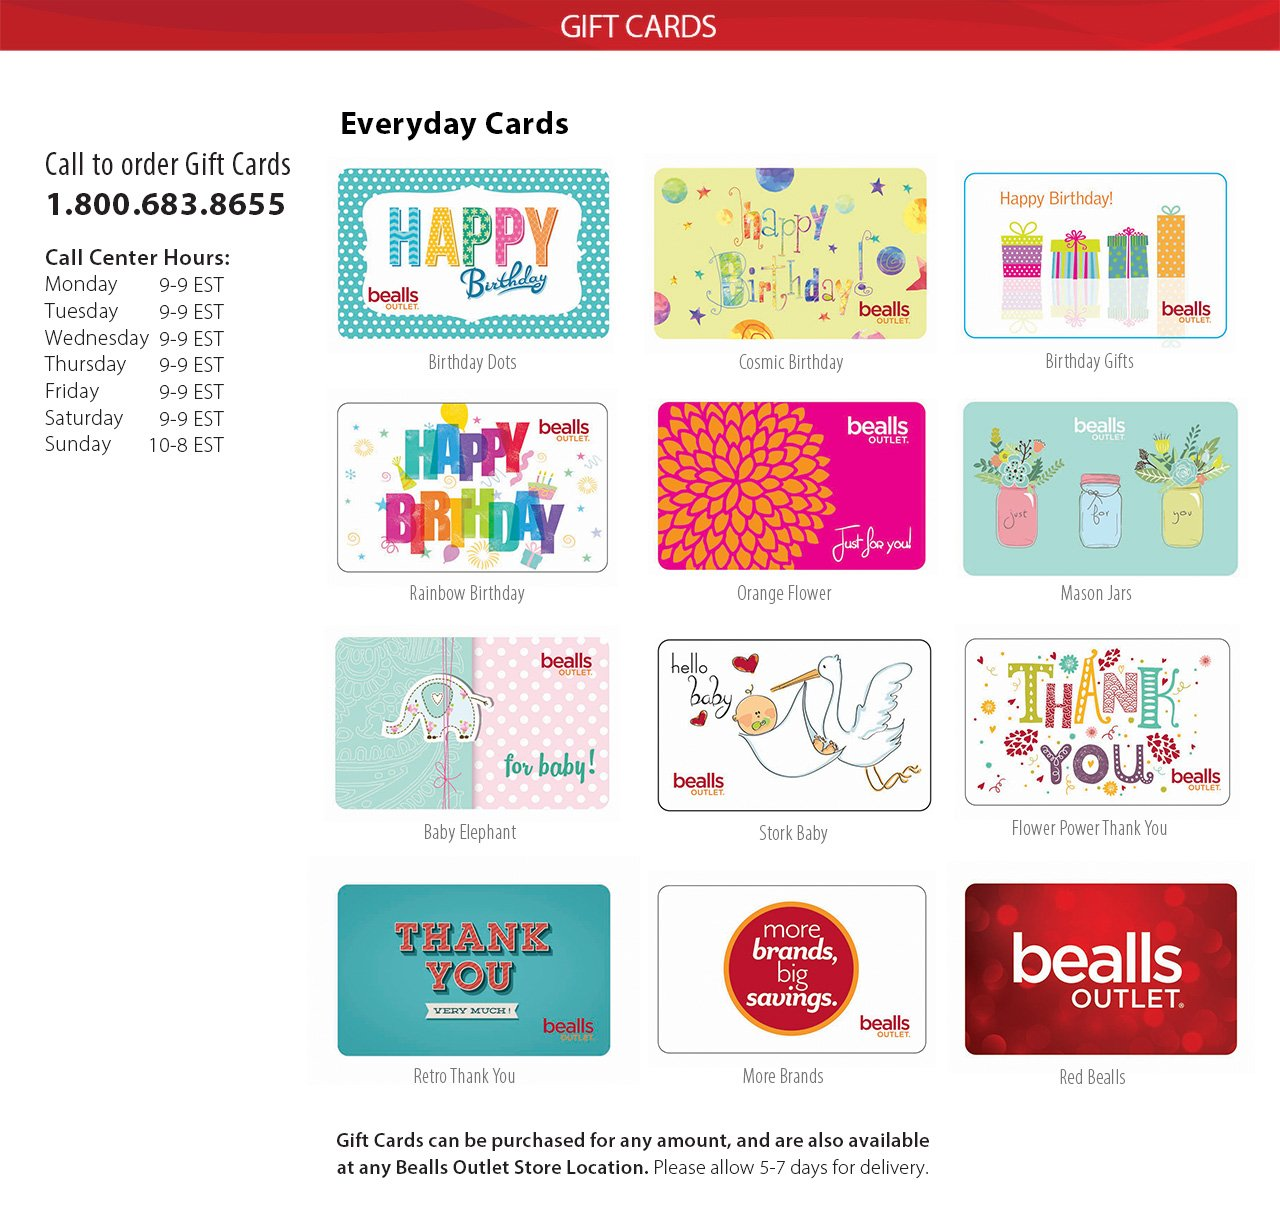 Bealls Outlet Giftcards